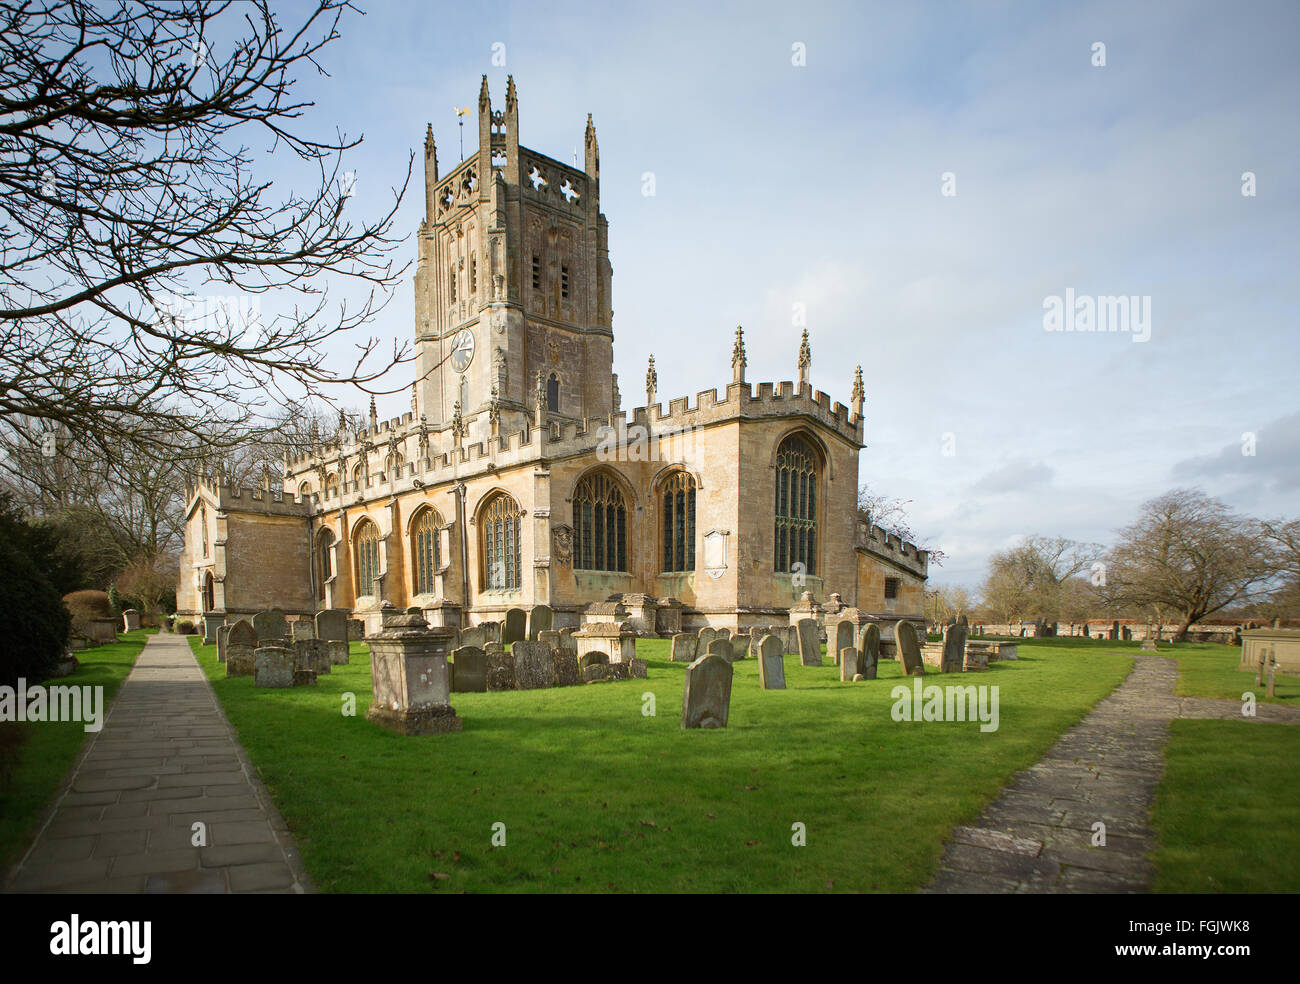 St Mary's Church in the village of Fairford, Gloucestershire - Stock Image